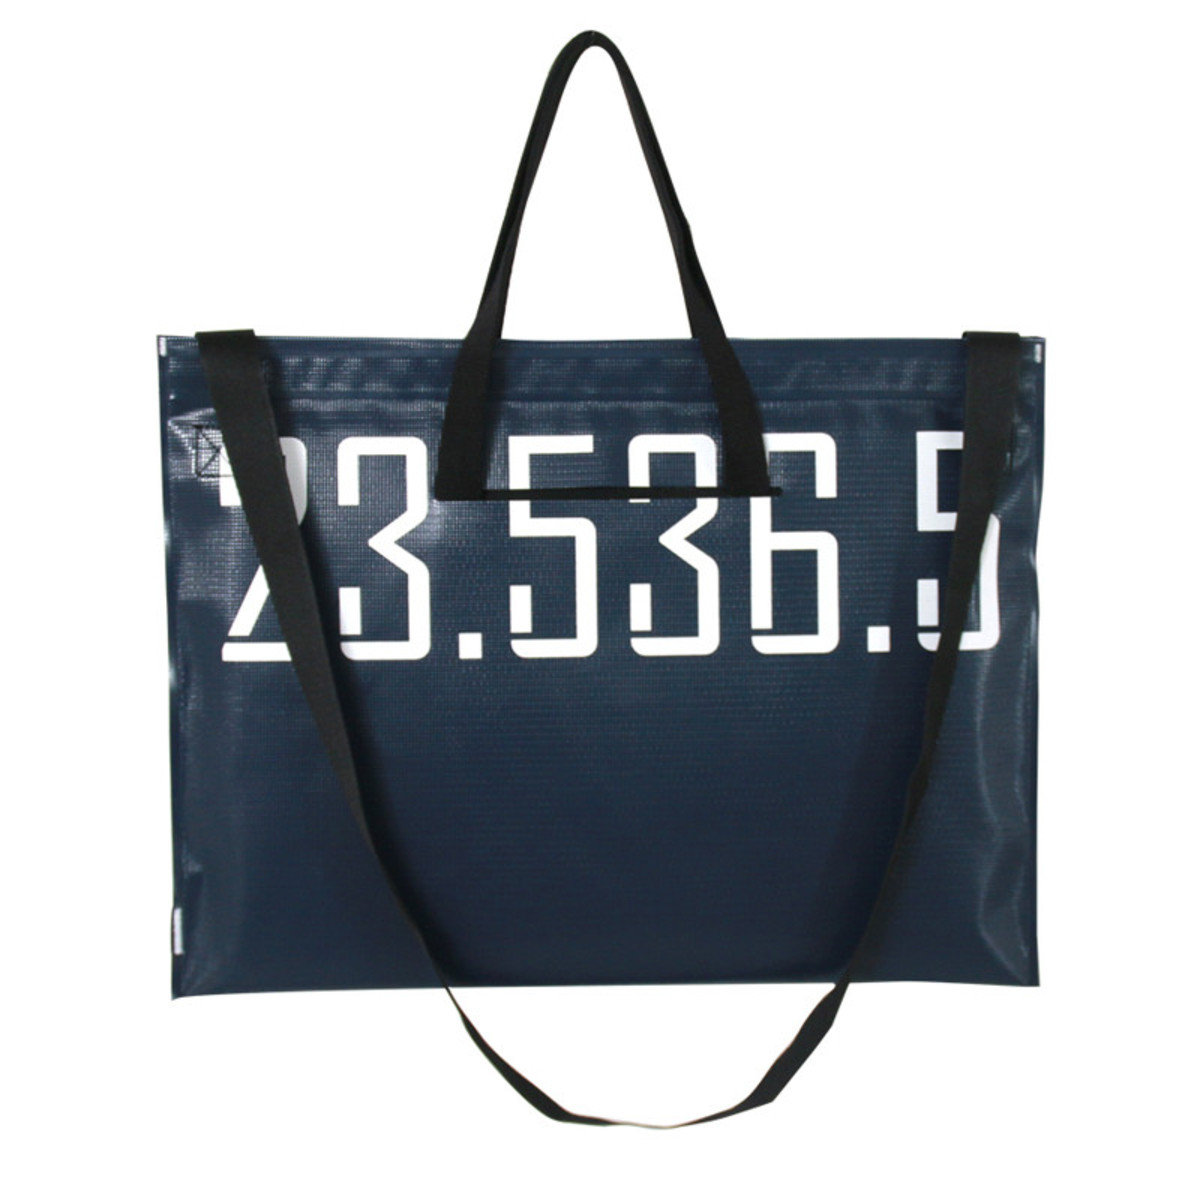 "UNITARPER SLEEPPER 15"" TOTE BAG - NAVY"